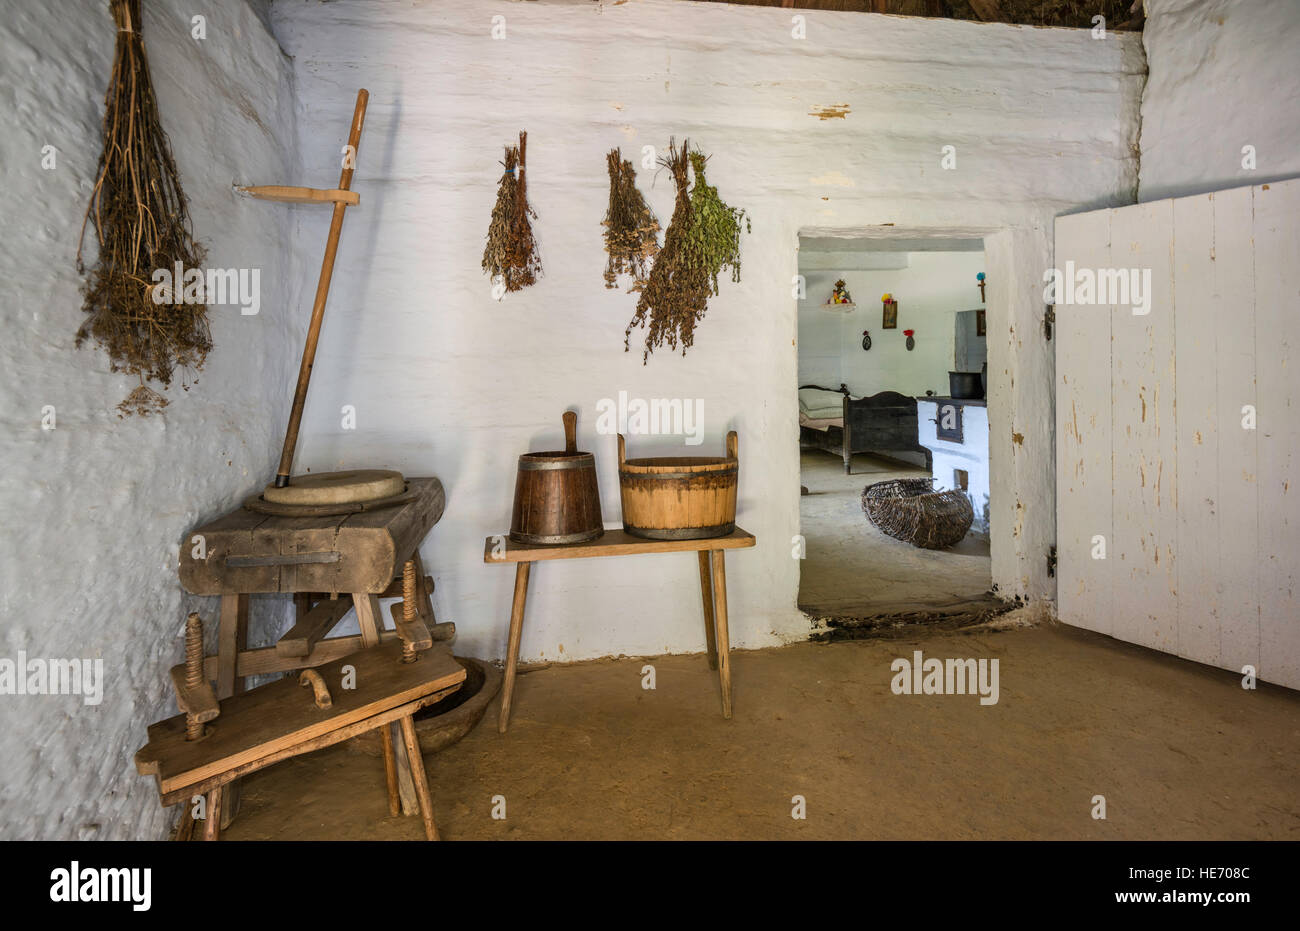 Wheel-wright workshop at farmstead from Posada Olchowska, 1880, Dolinians ethnic group, Rural Architecture Museum, - Stock Image